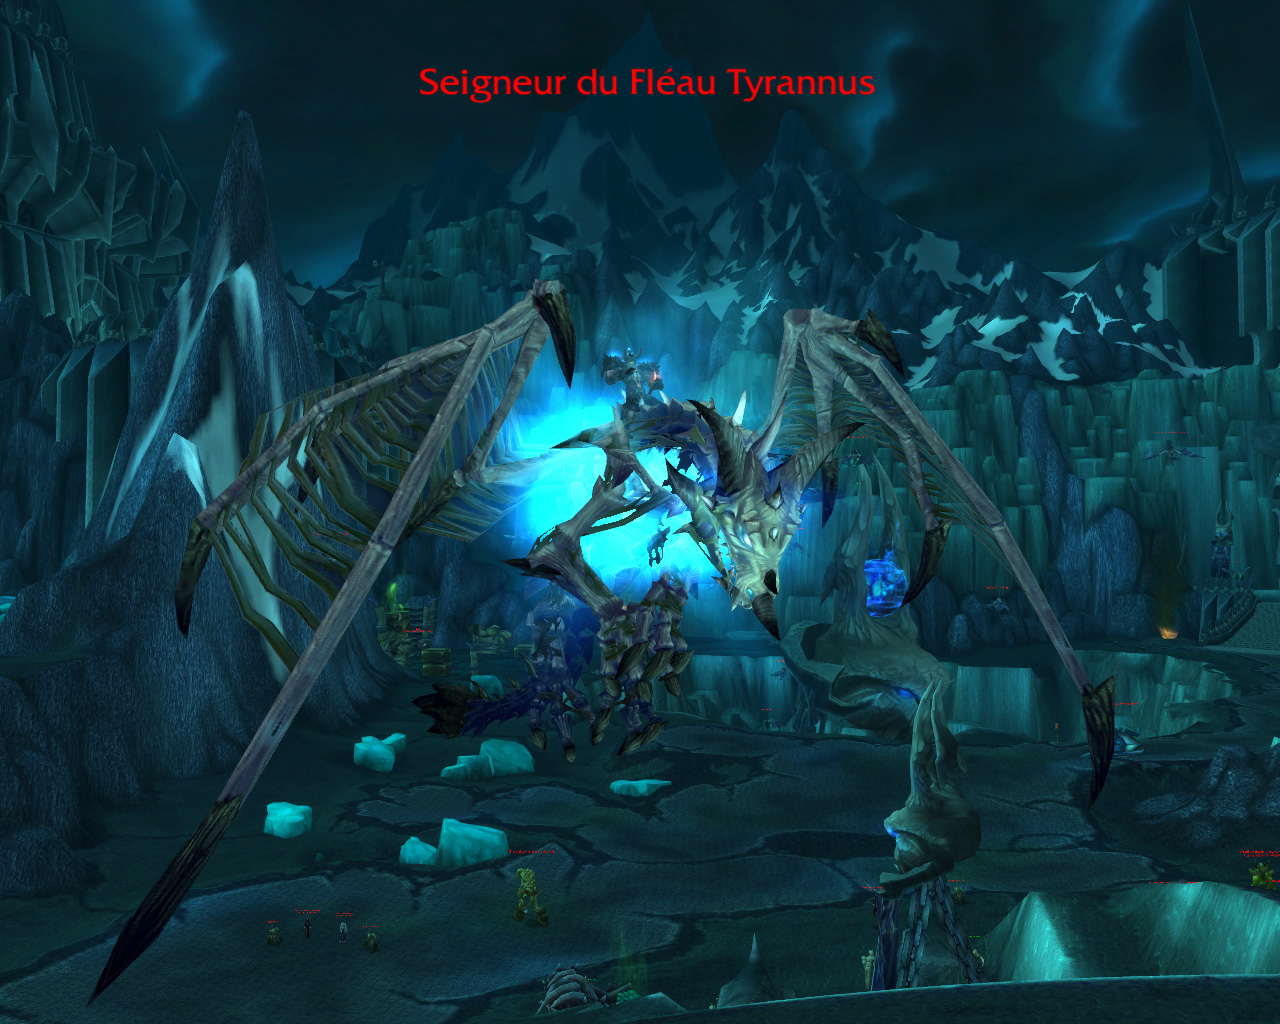 ptr 3 3 les salles gel es la fosse de saron world of warcraft judgehype. Black Bedroom Furniture Sets. Home Design Ideas